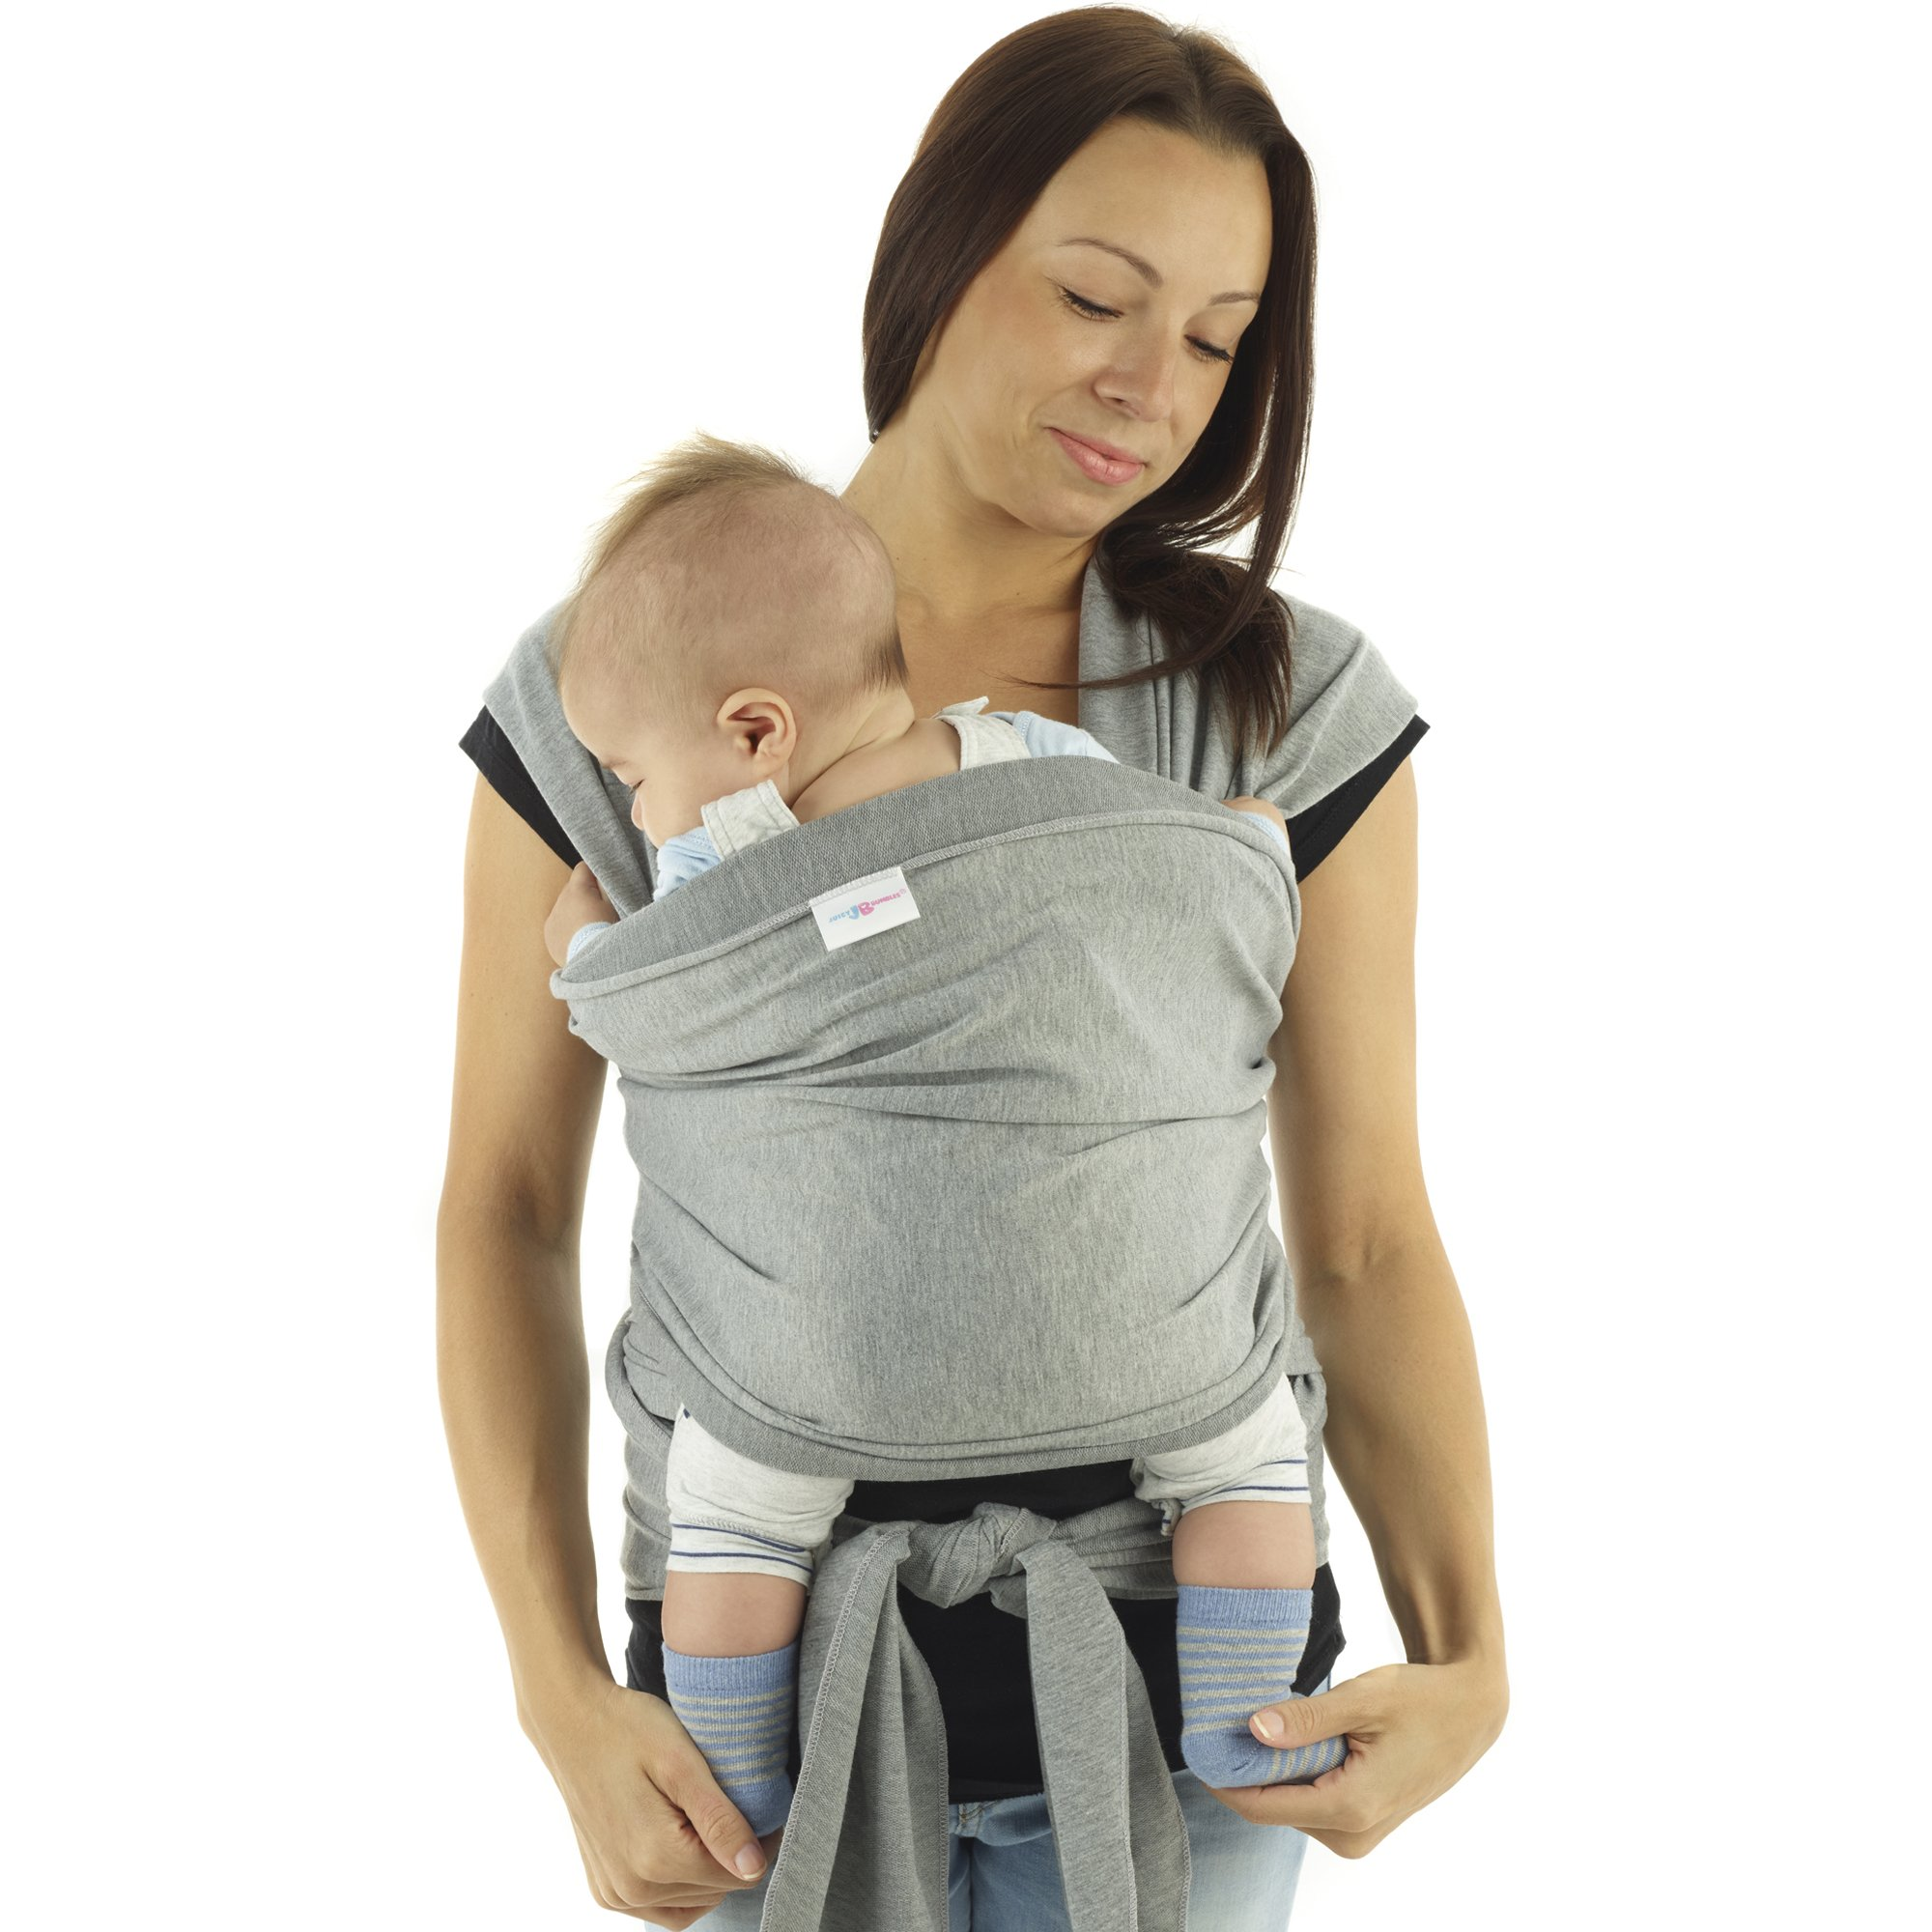 Juicy Bumbles Baby Sling Baby Wrap Carrier Newborn To 35 Lbs